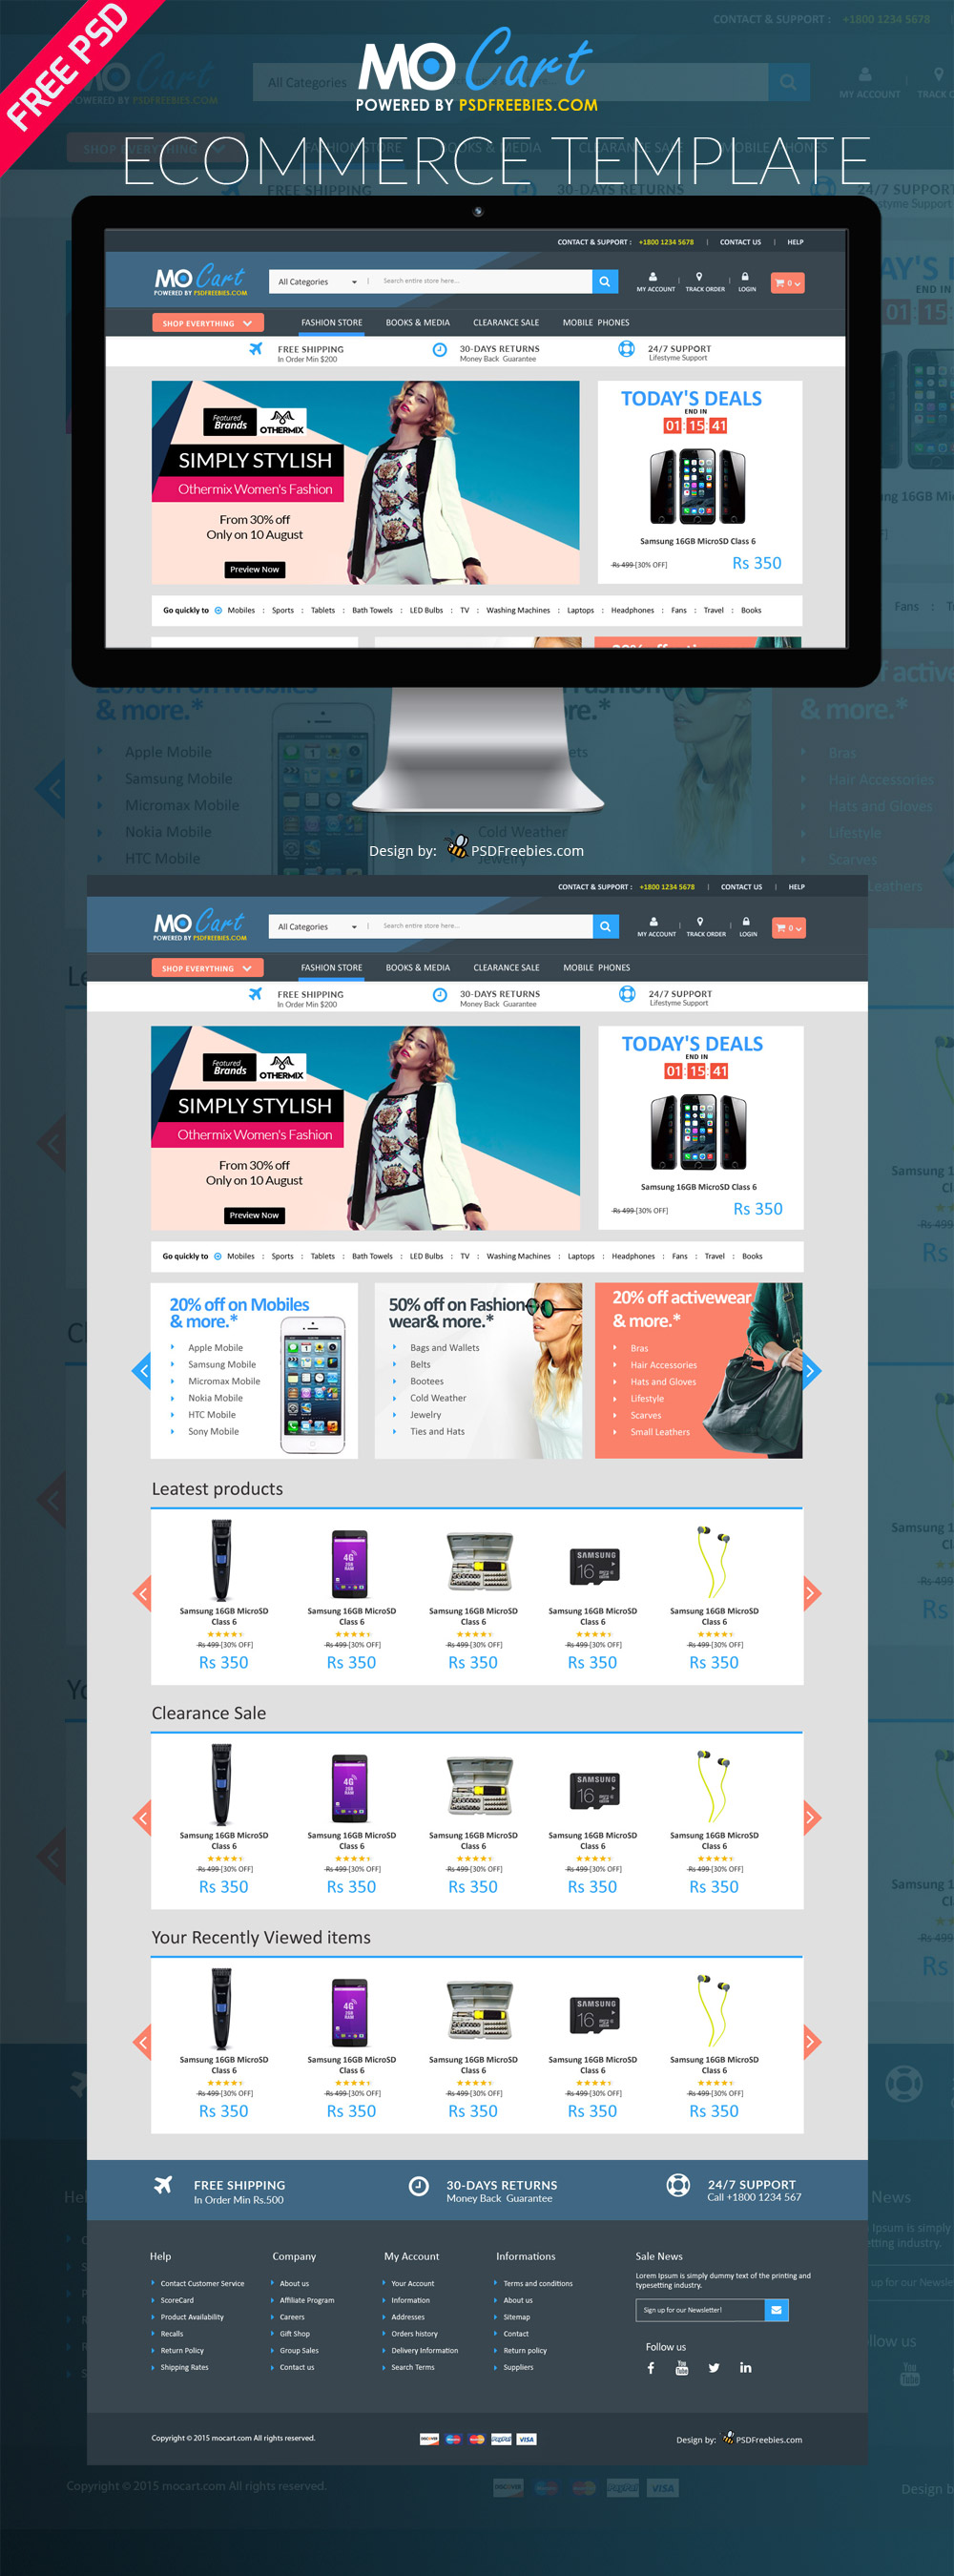 mocart-e-commerce-website-psd-template